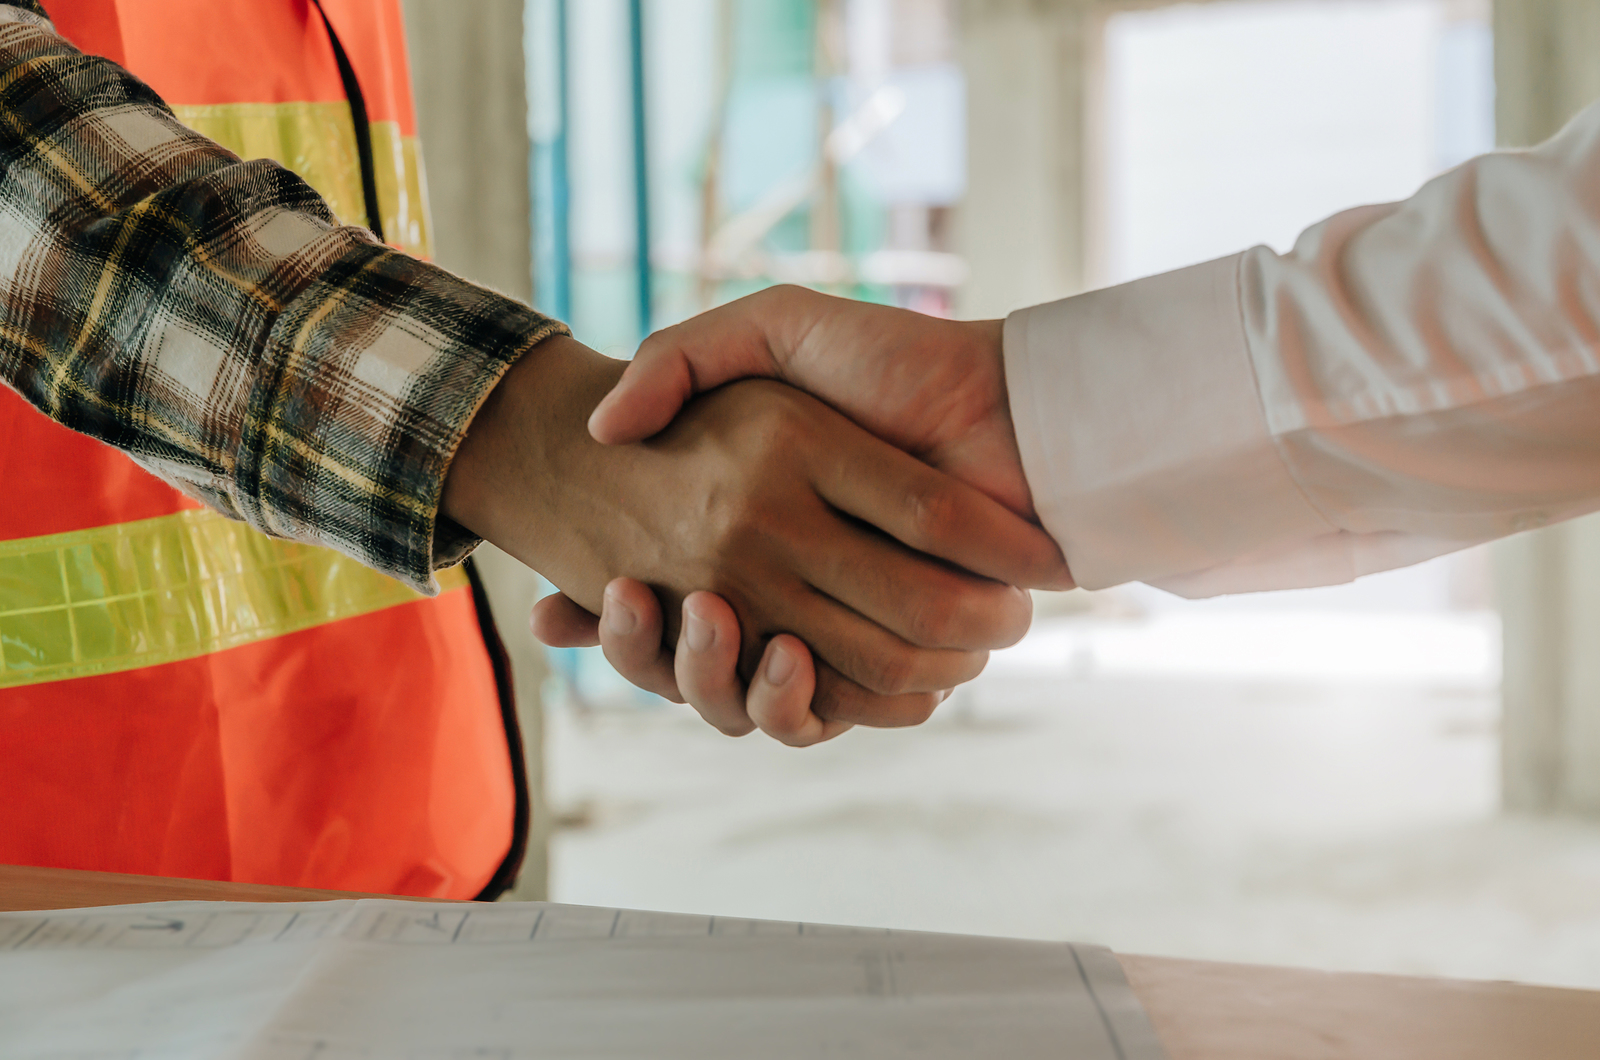 construction worker team contractor hand shake after finishing up a business meeting to greeting start up project contract in construction site building, teamwork, partnership and industry concept